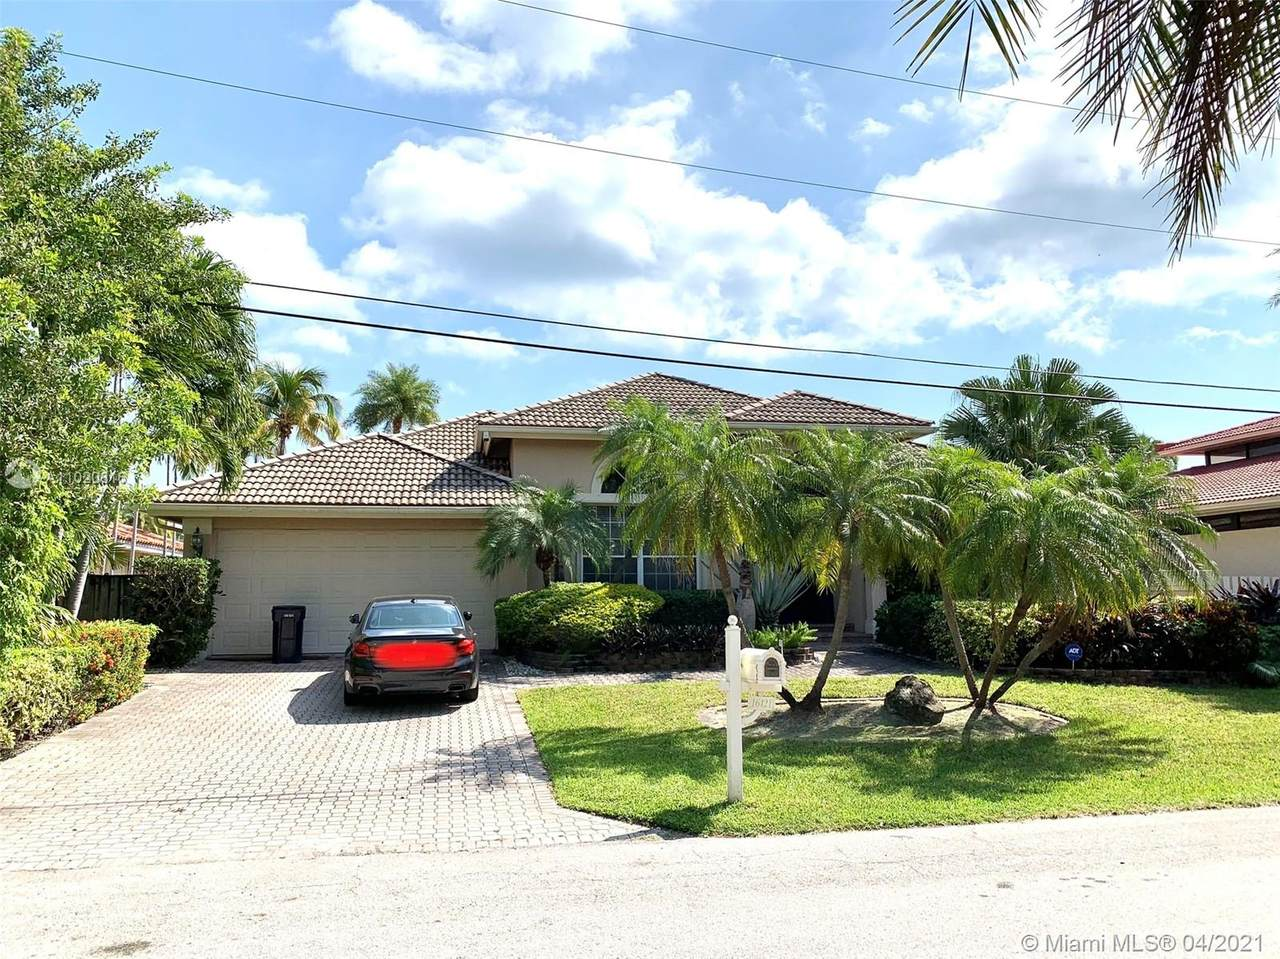 16421 34th Ave - Photo 1